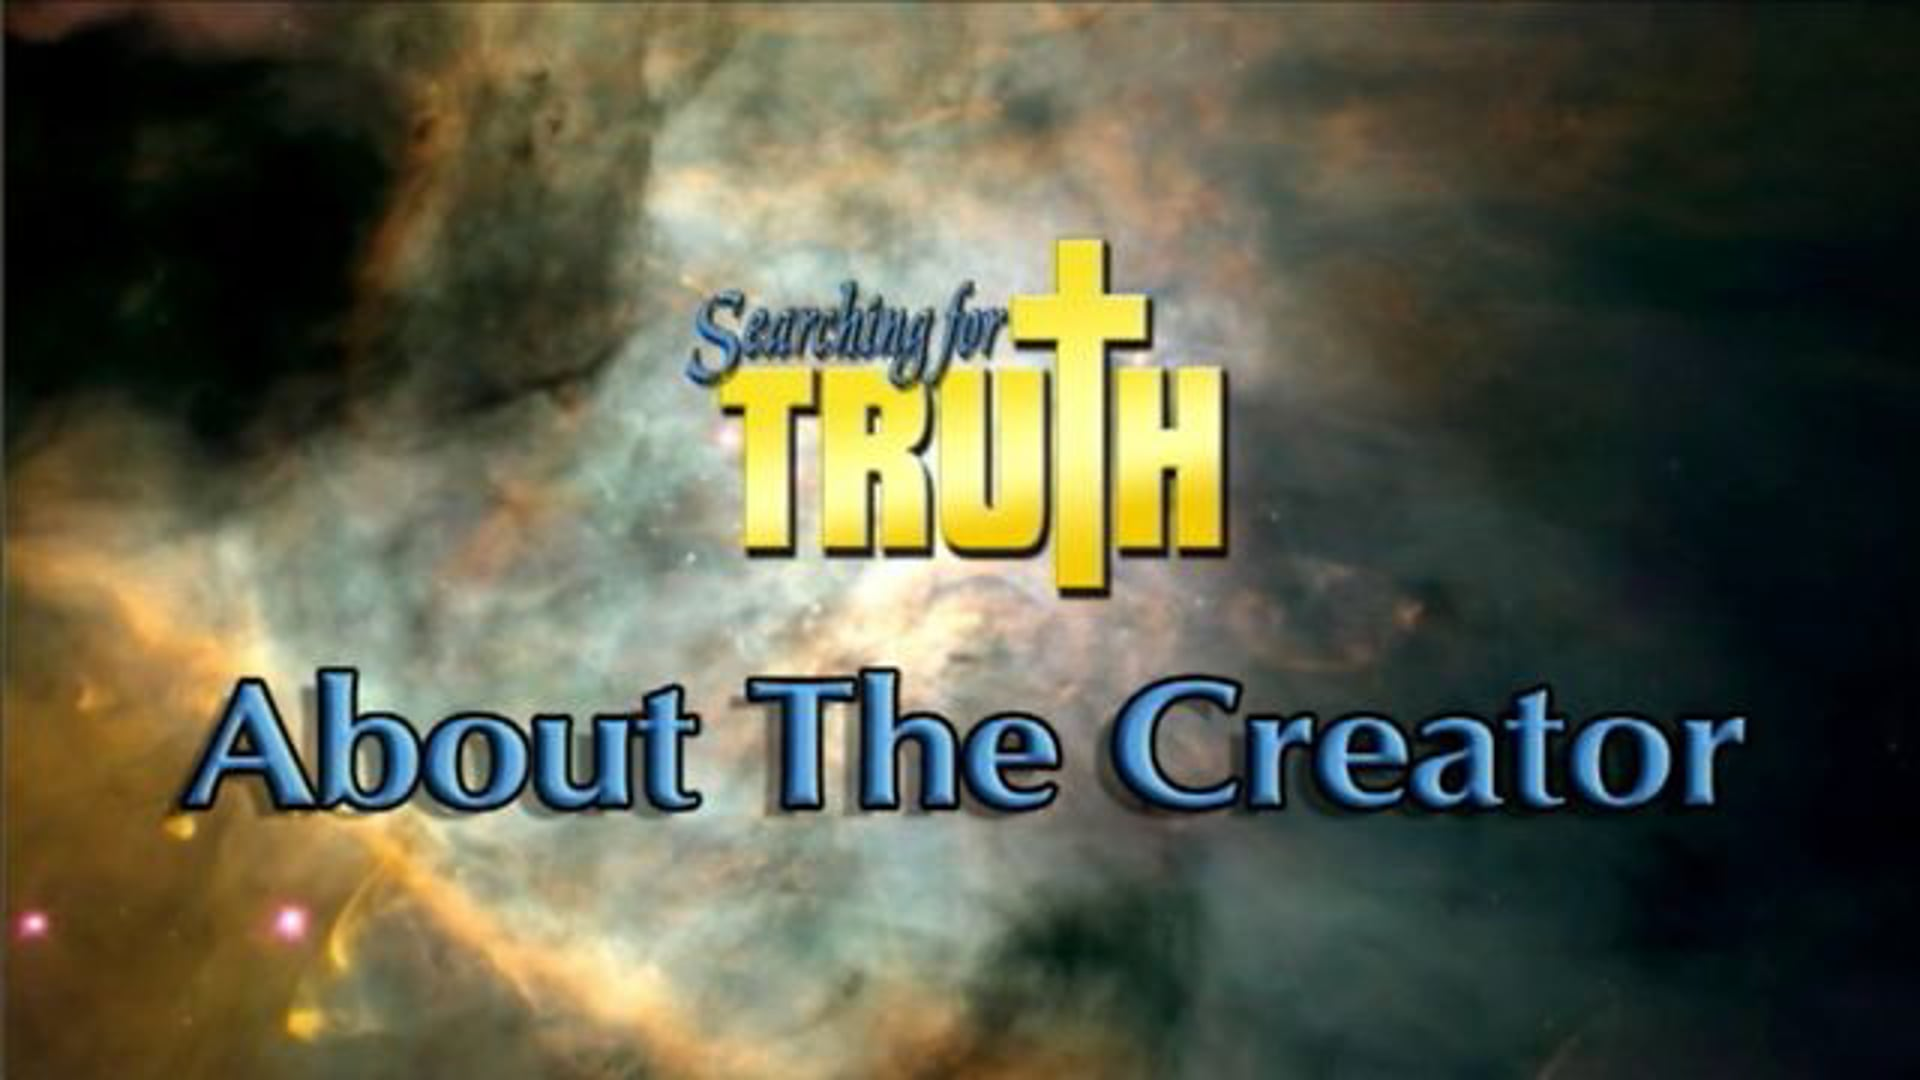 Searching for Truth About the Creator